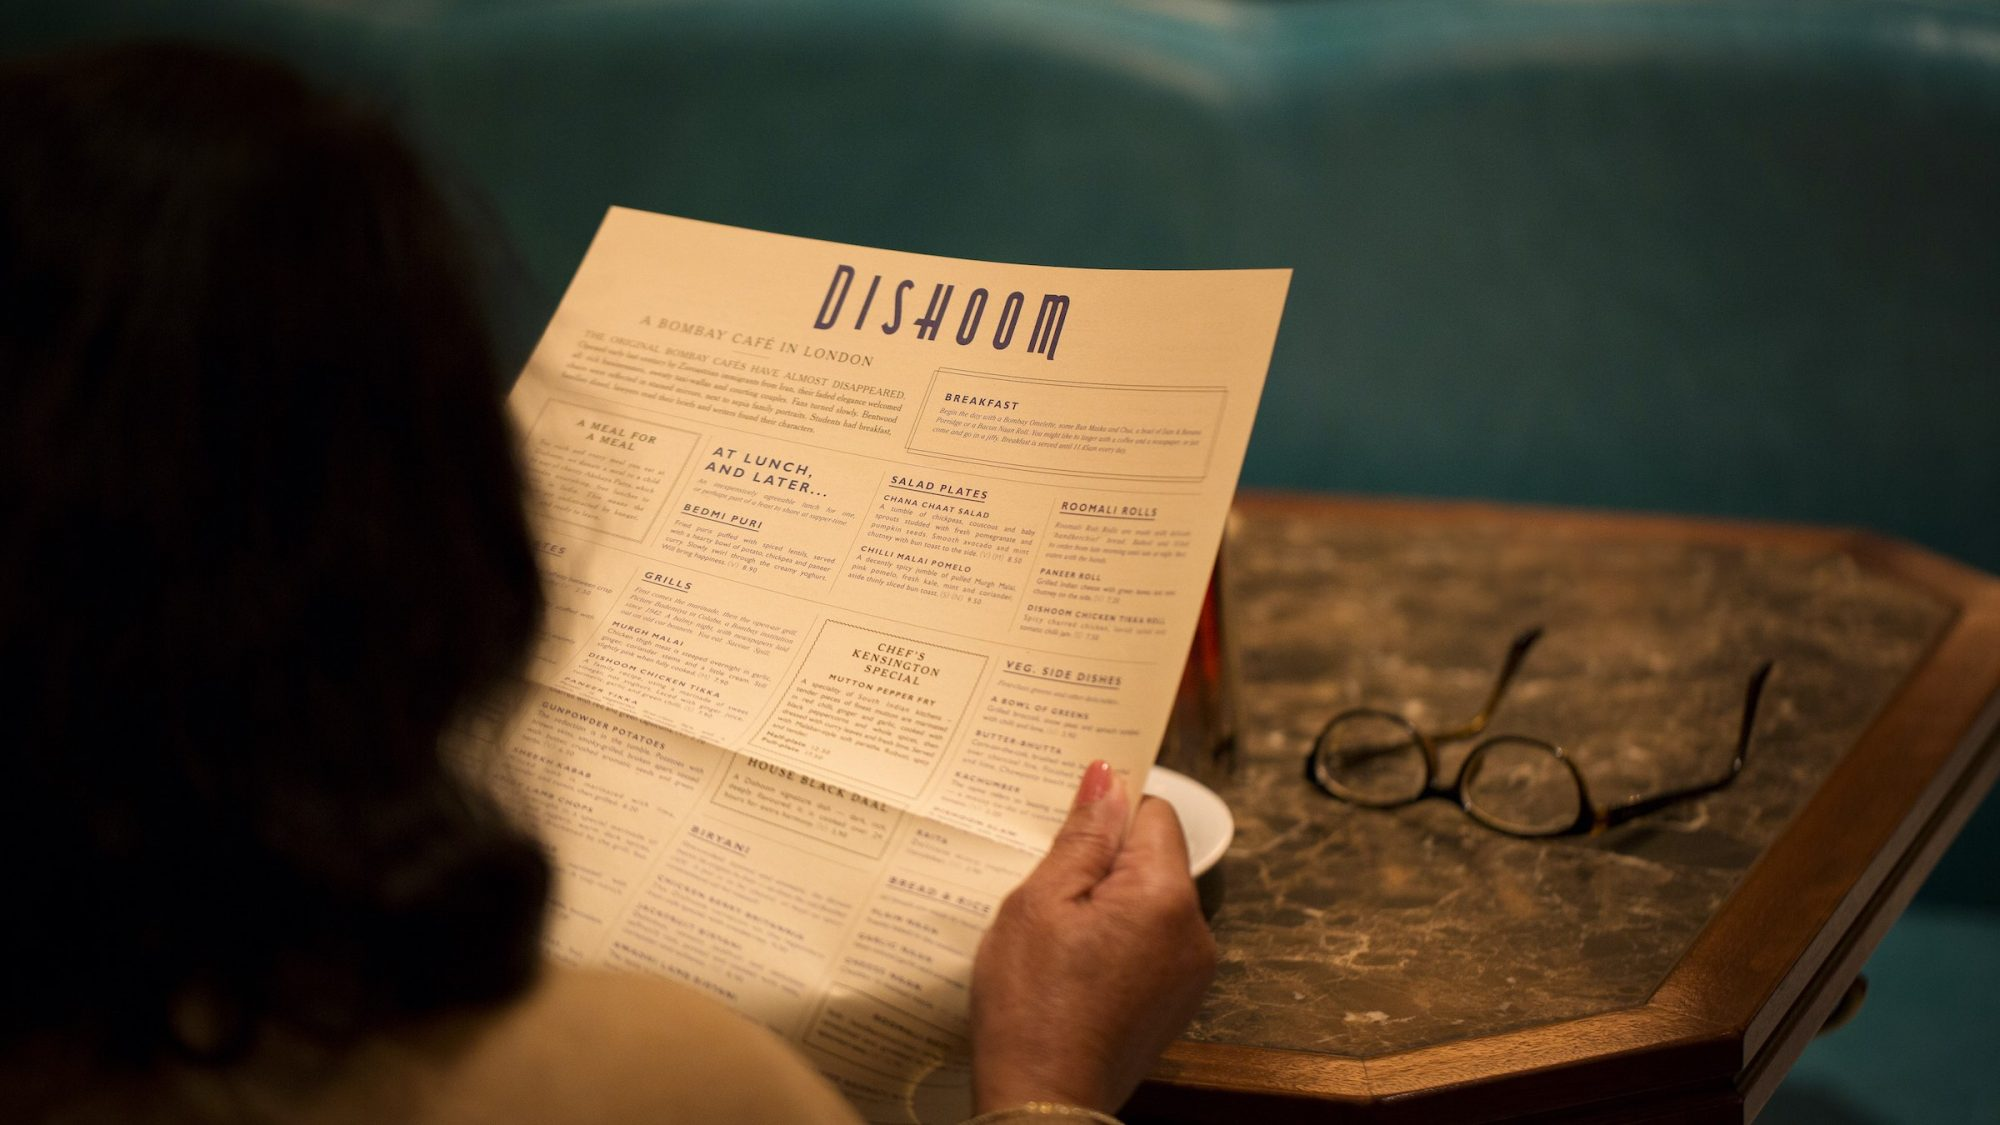 Reading the Dishoom menu